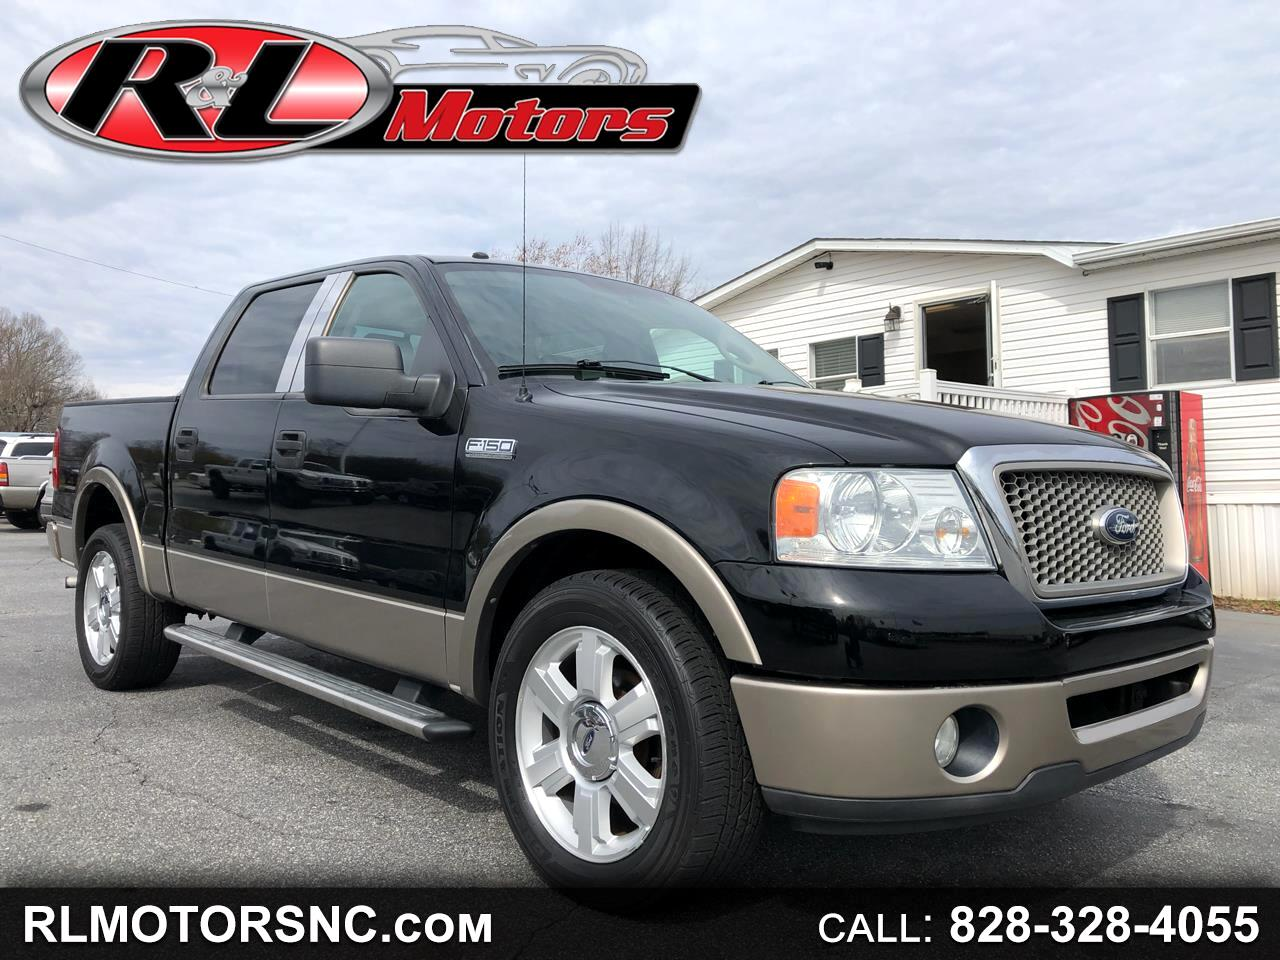 2006 Ford F-150 Lariat SuperCrew Short Bed 2WD